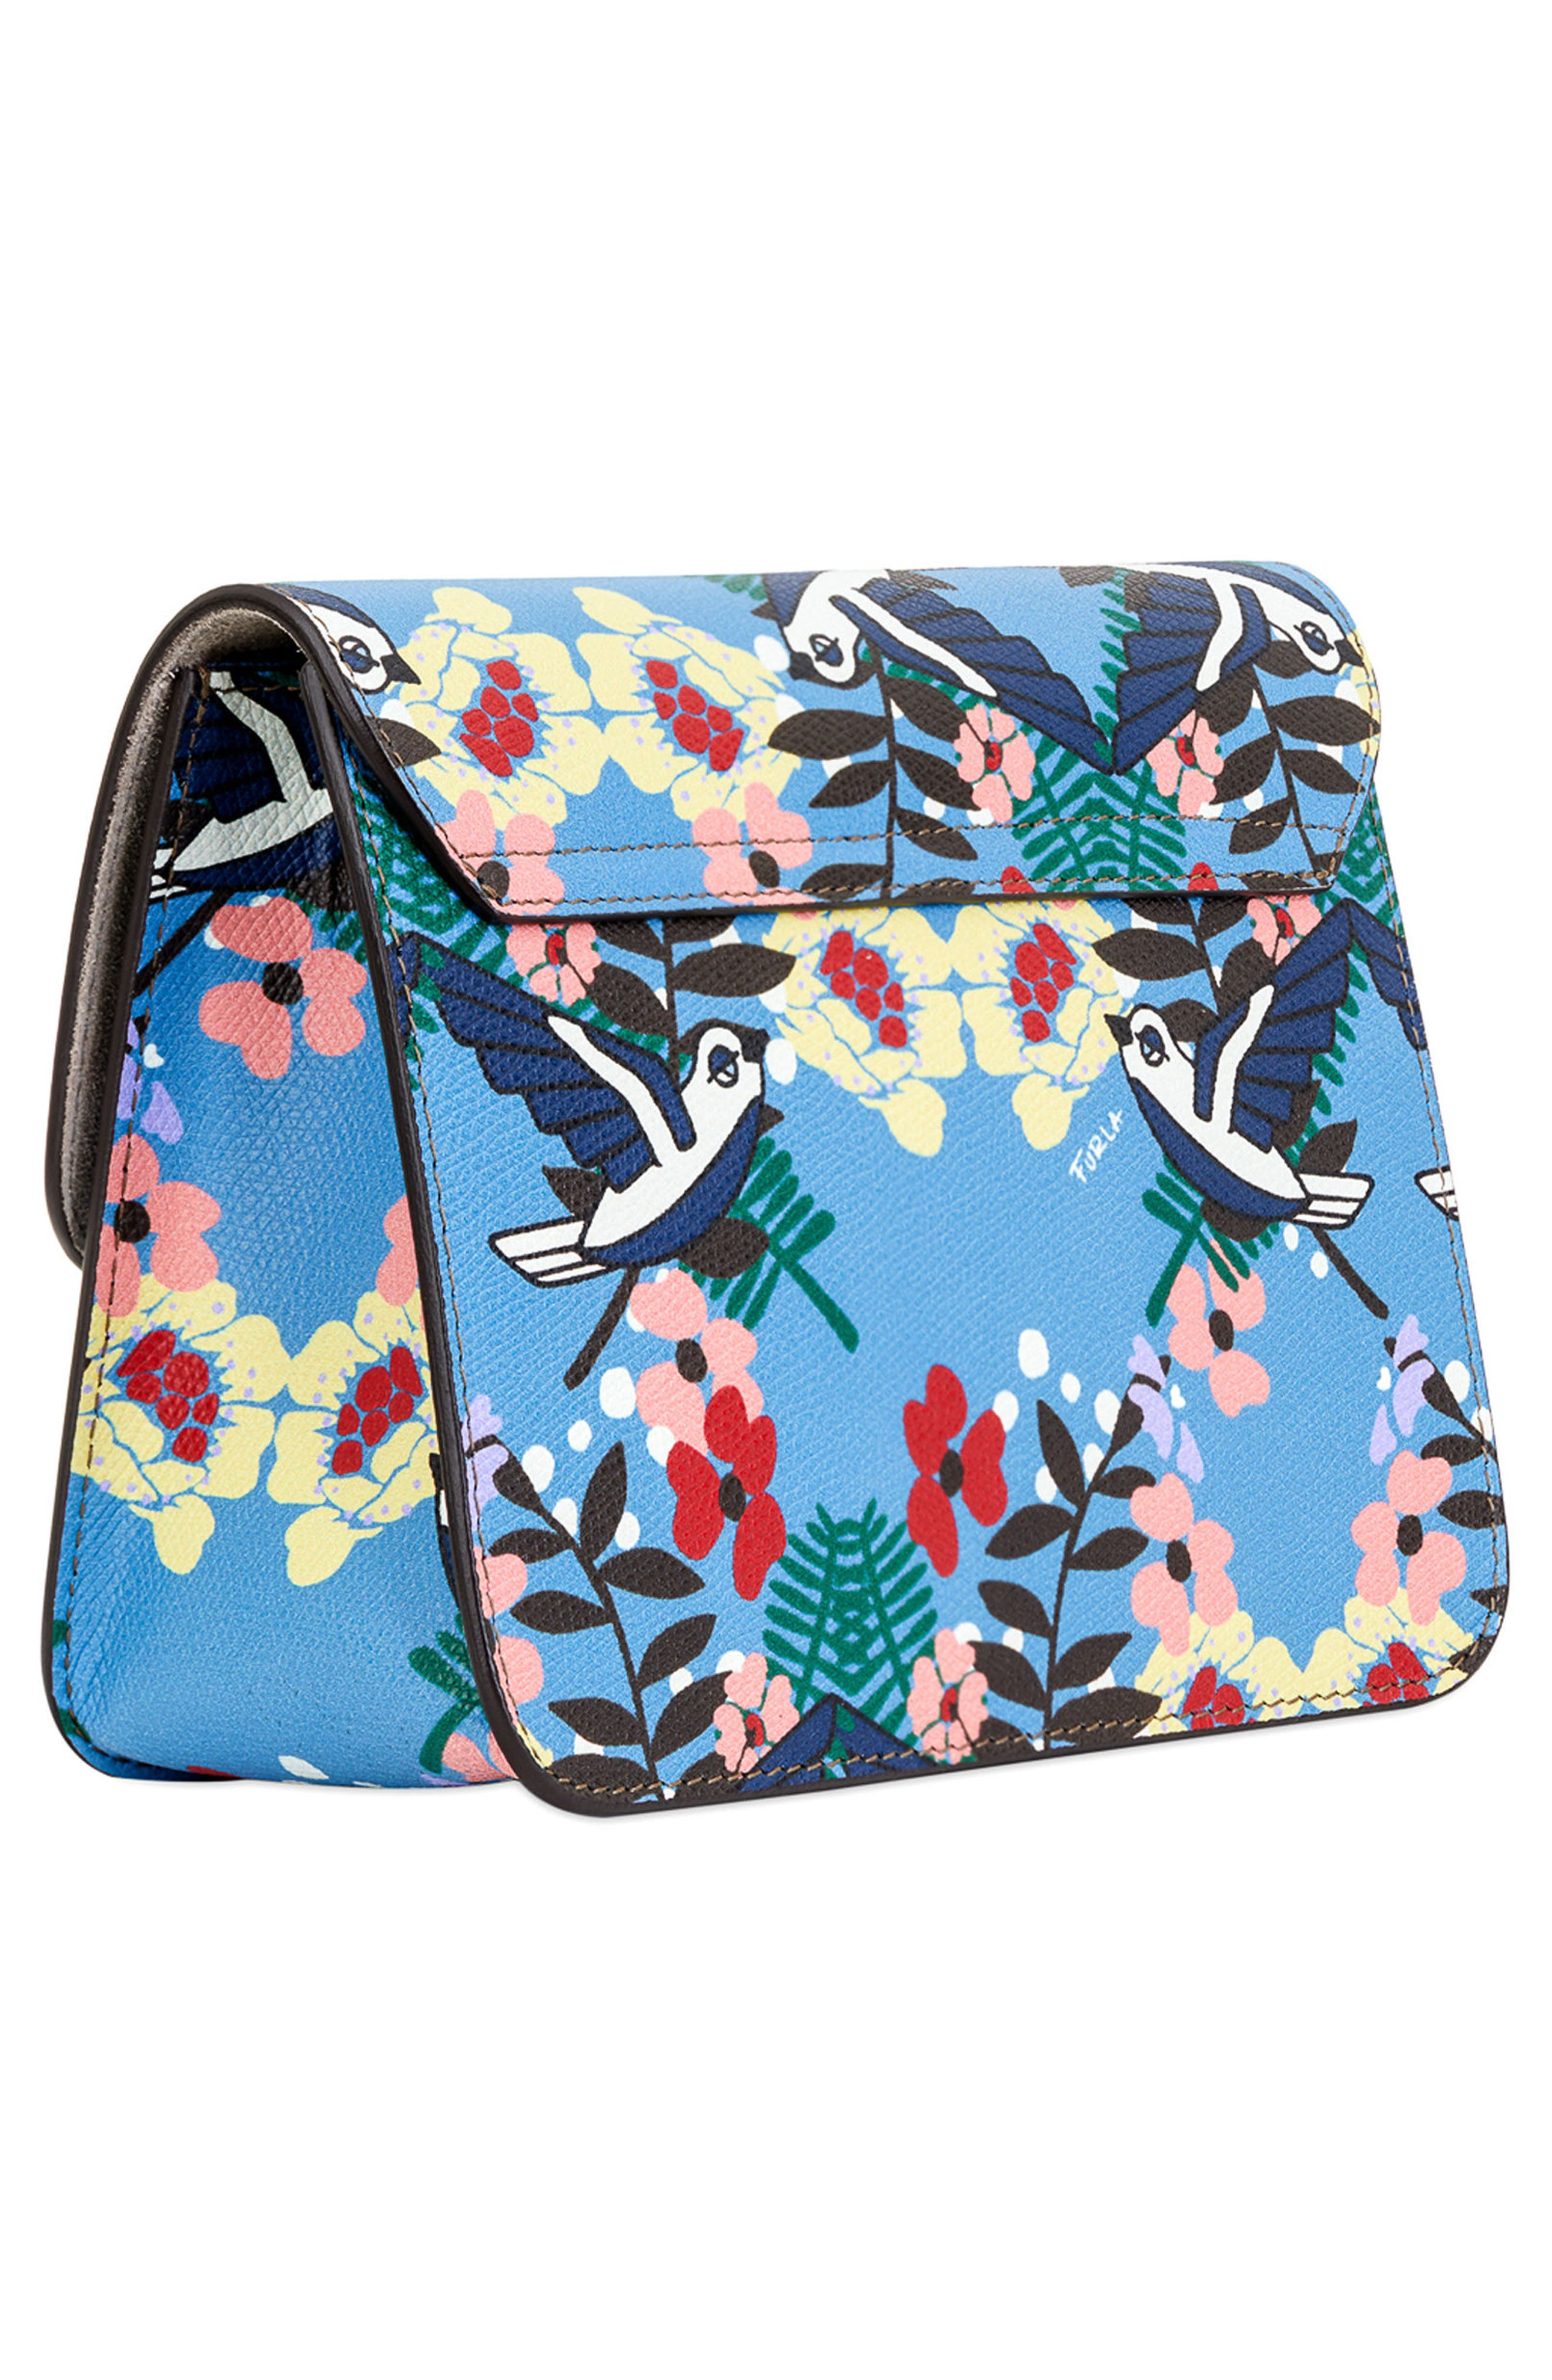 Small Metropolis Print Leather Crossbody Bag,                             Alternate thumbnail 3, color,                             Toni Celeste